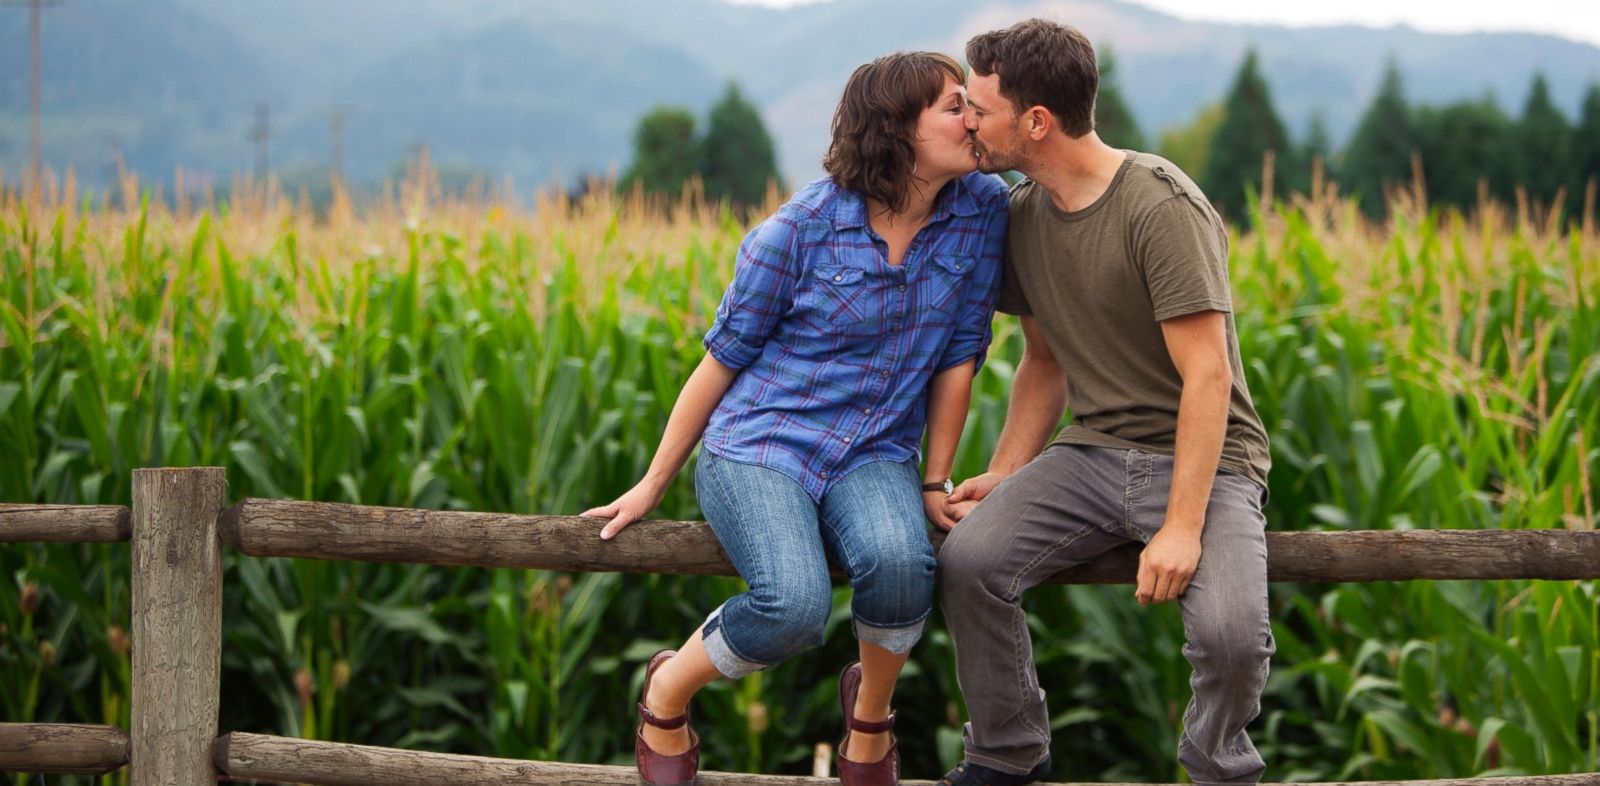 Serious farmers dating site in usa